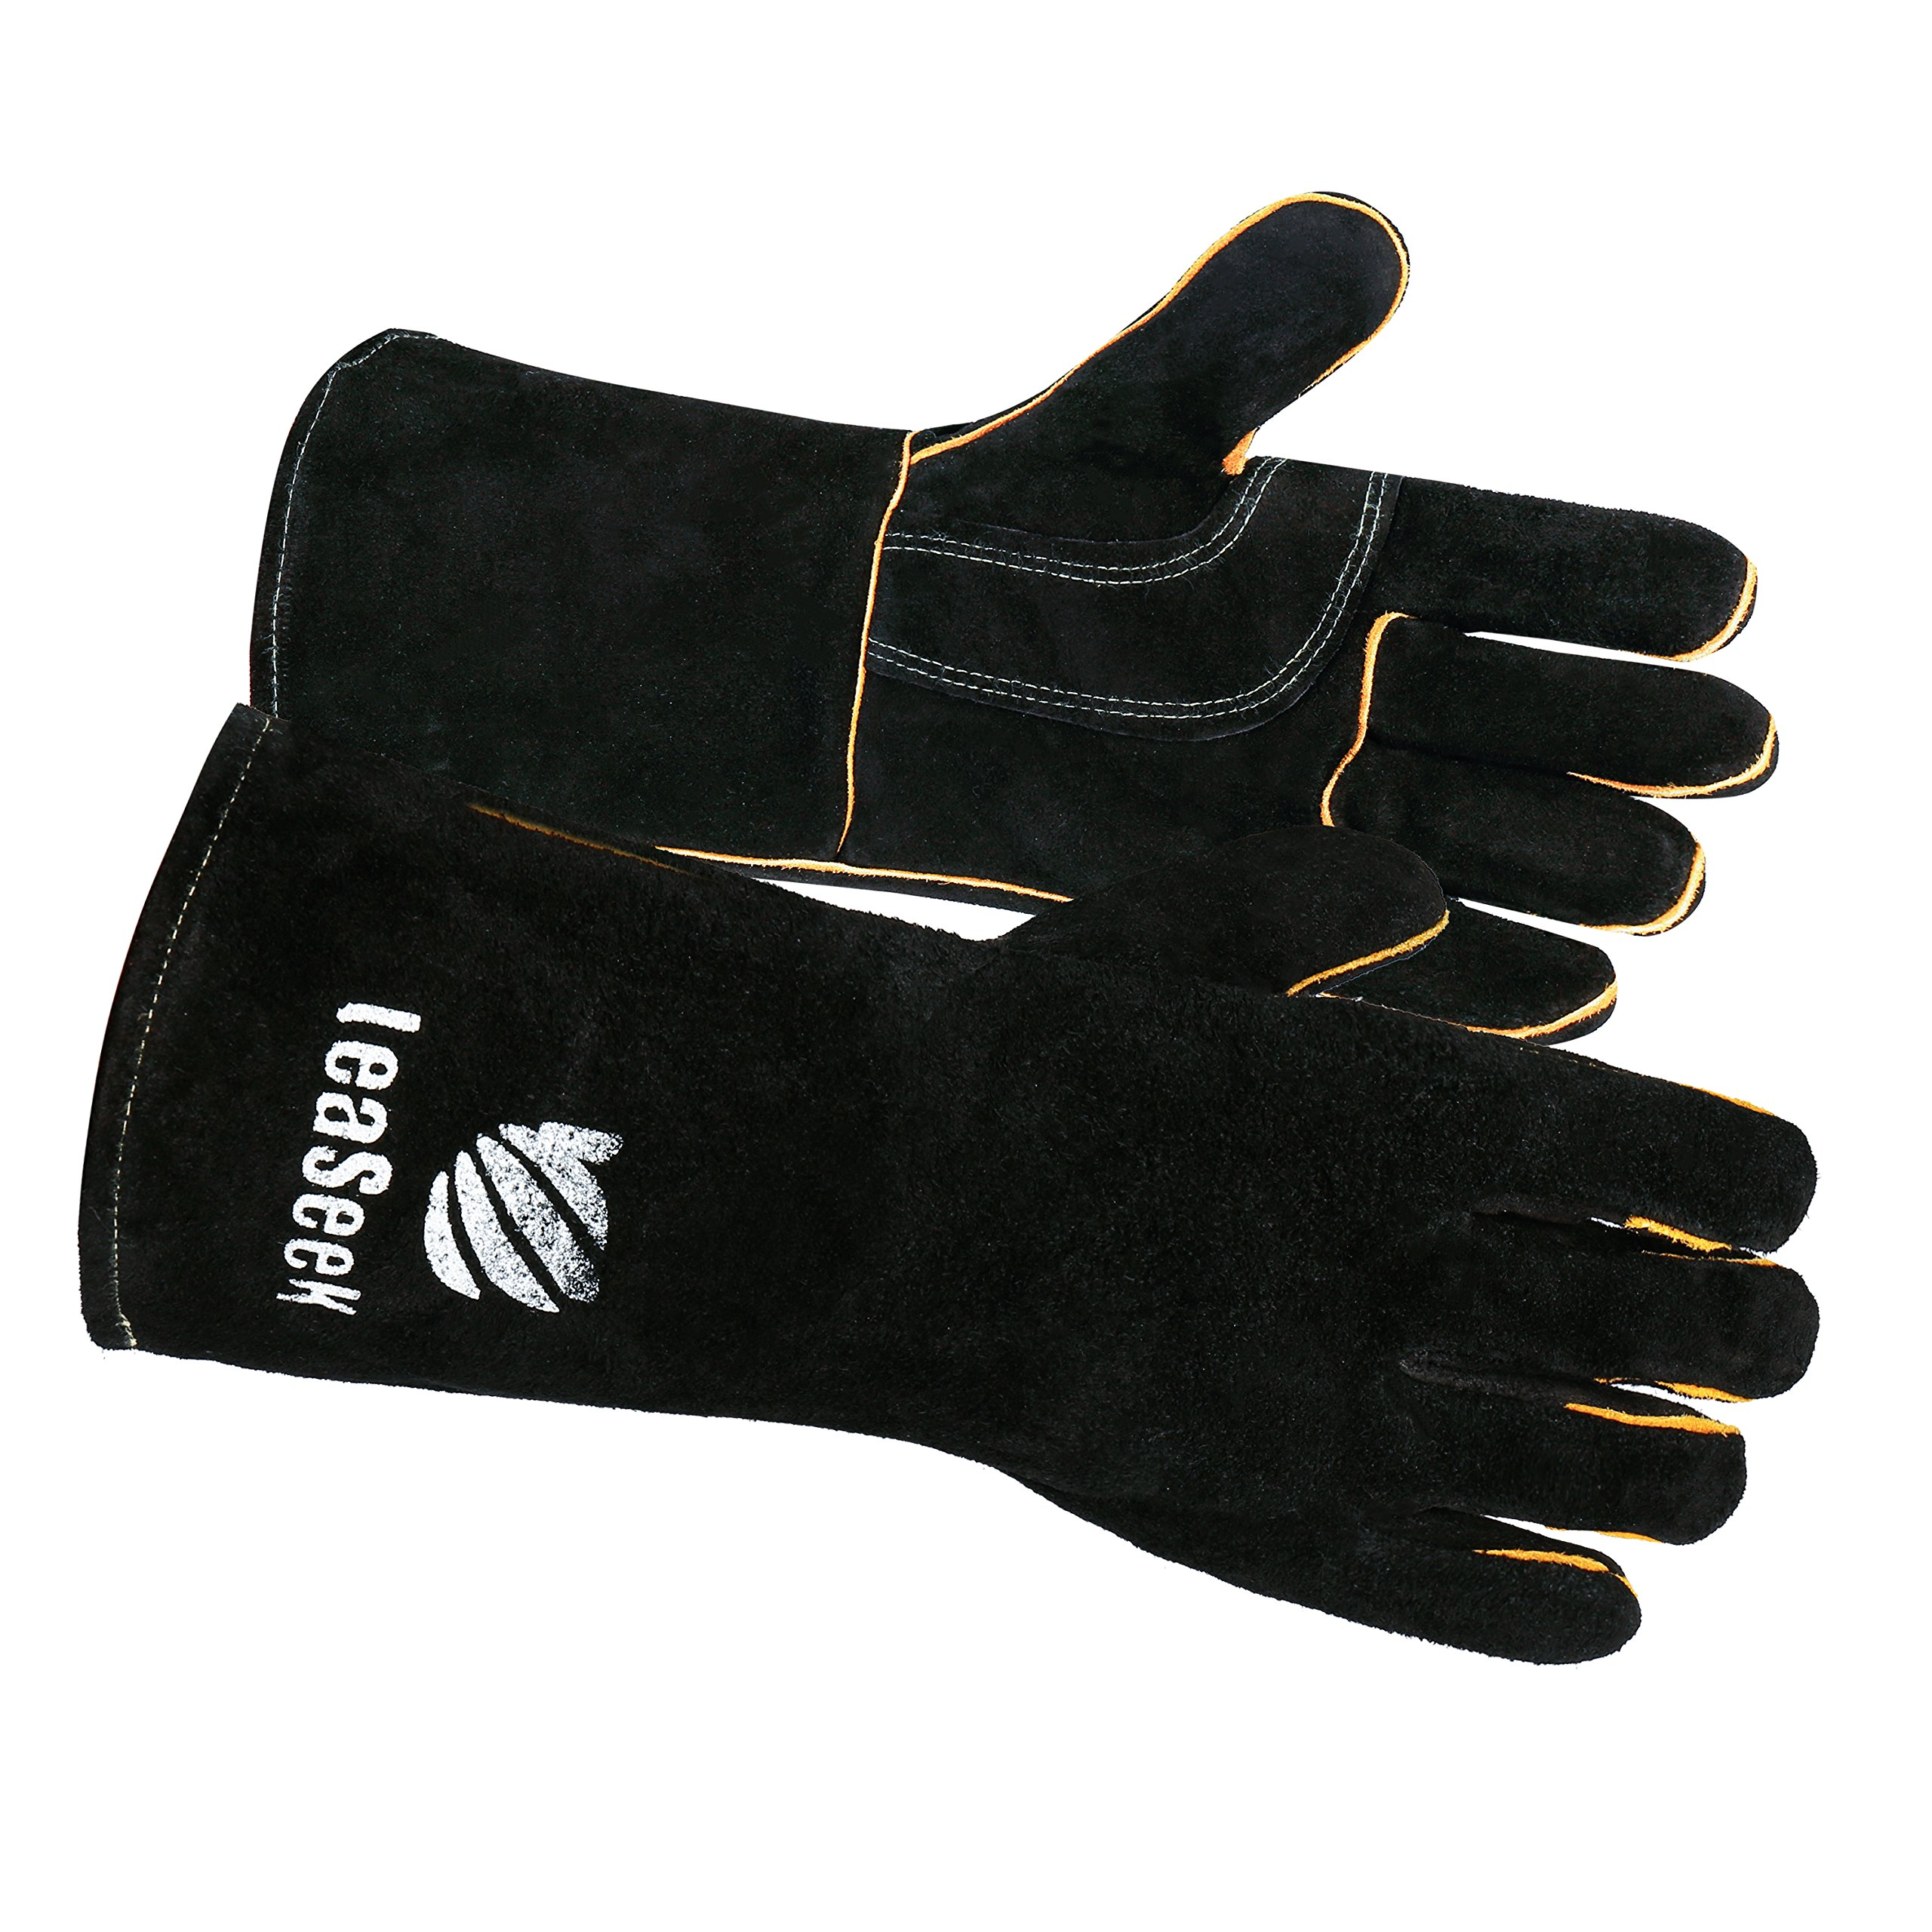 Cheap Flame Resistant Gloves Find Flame Resistant Gloves Deals On